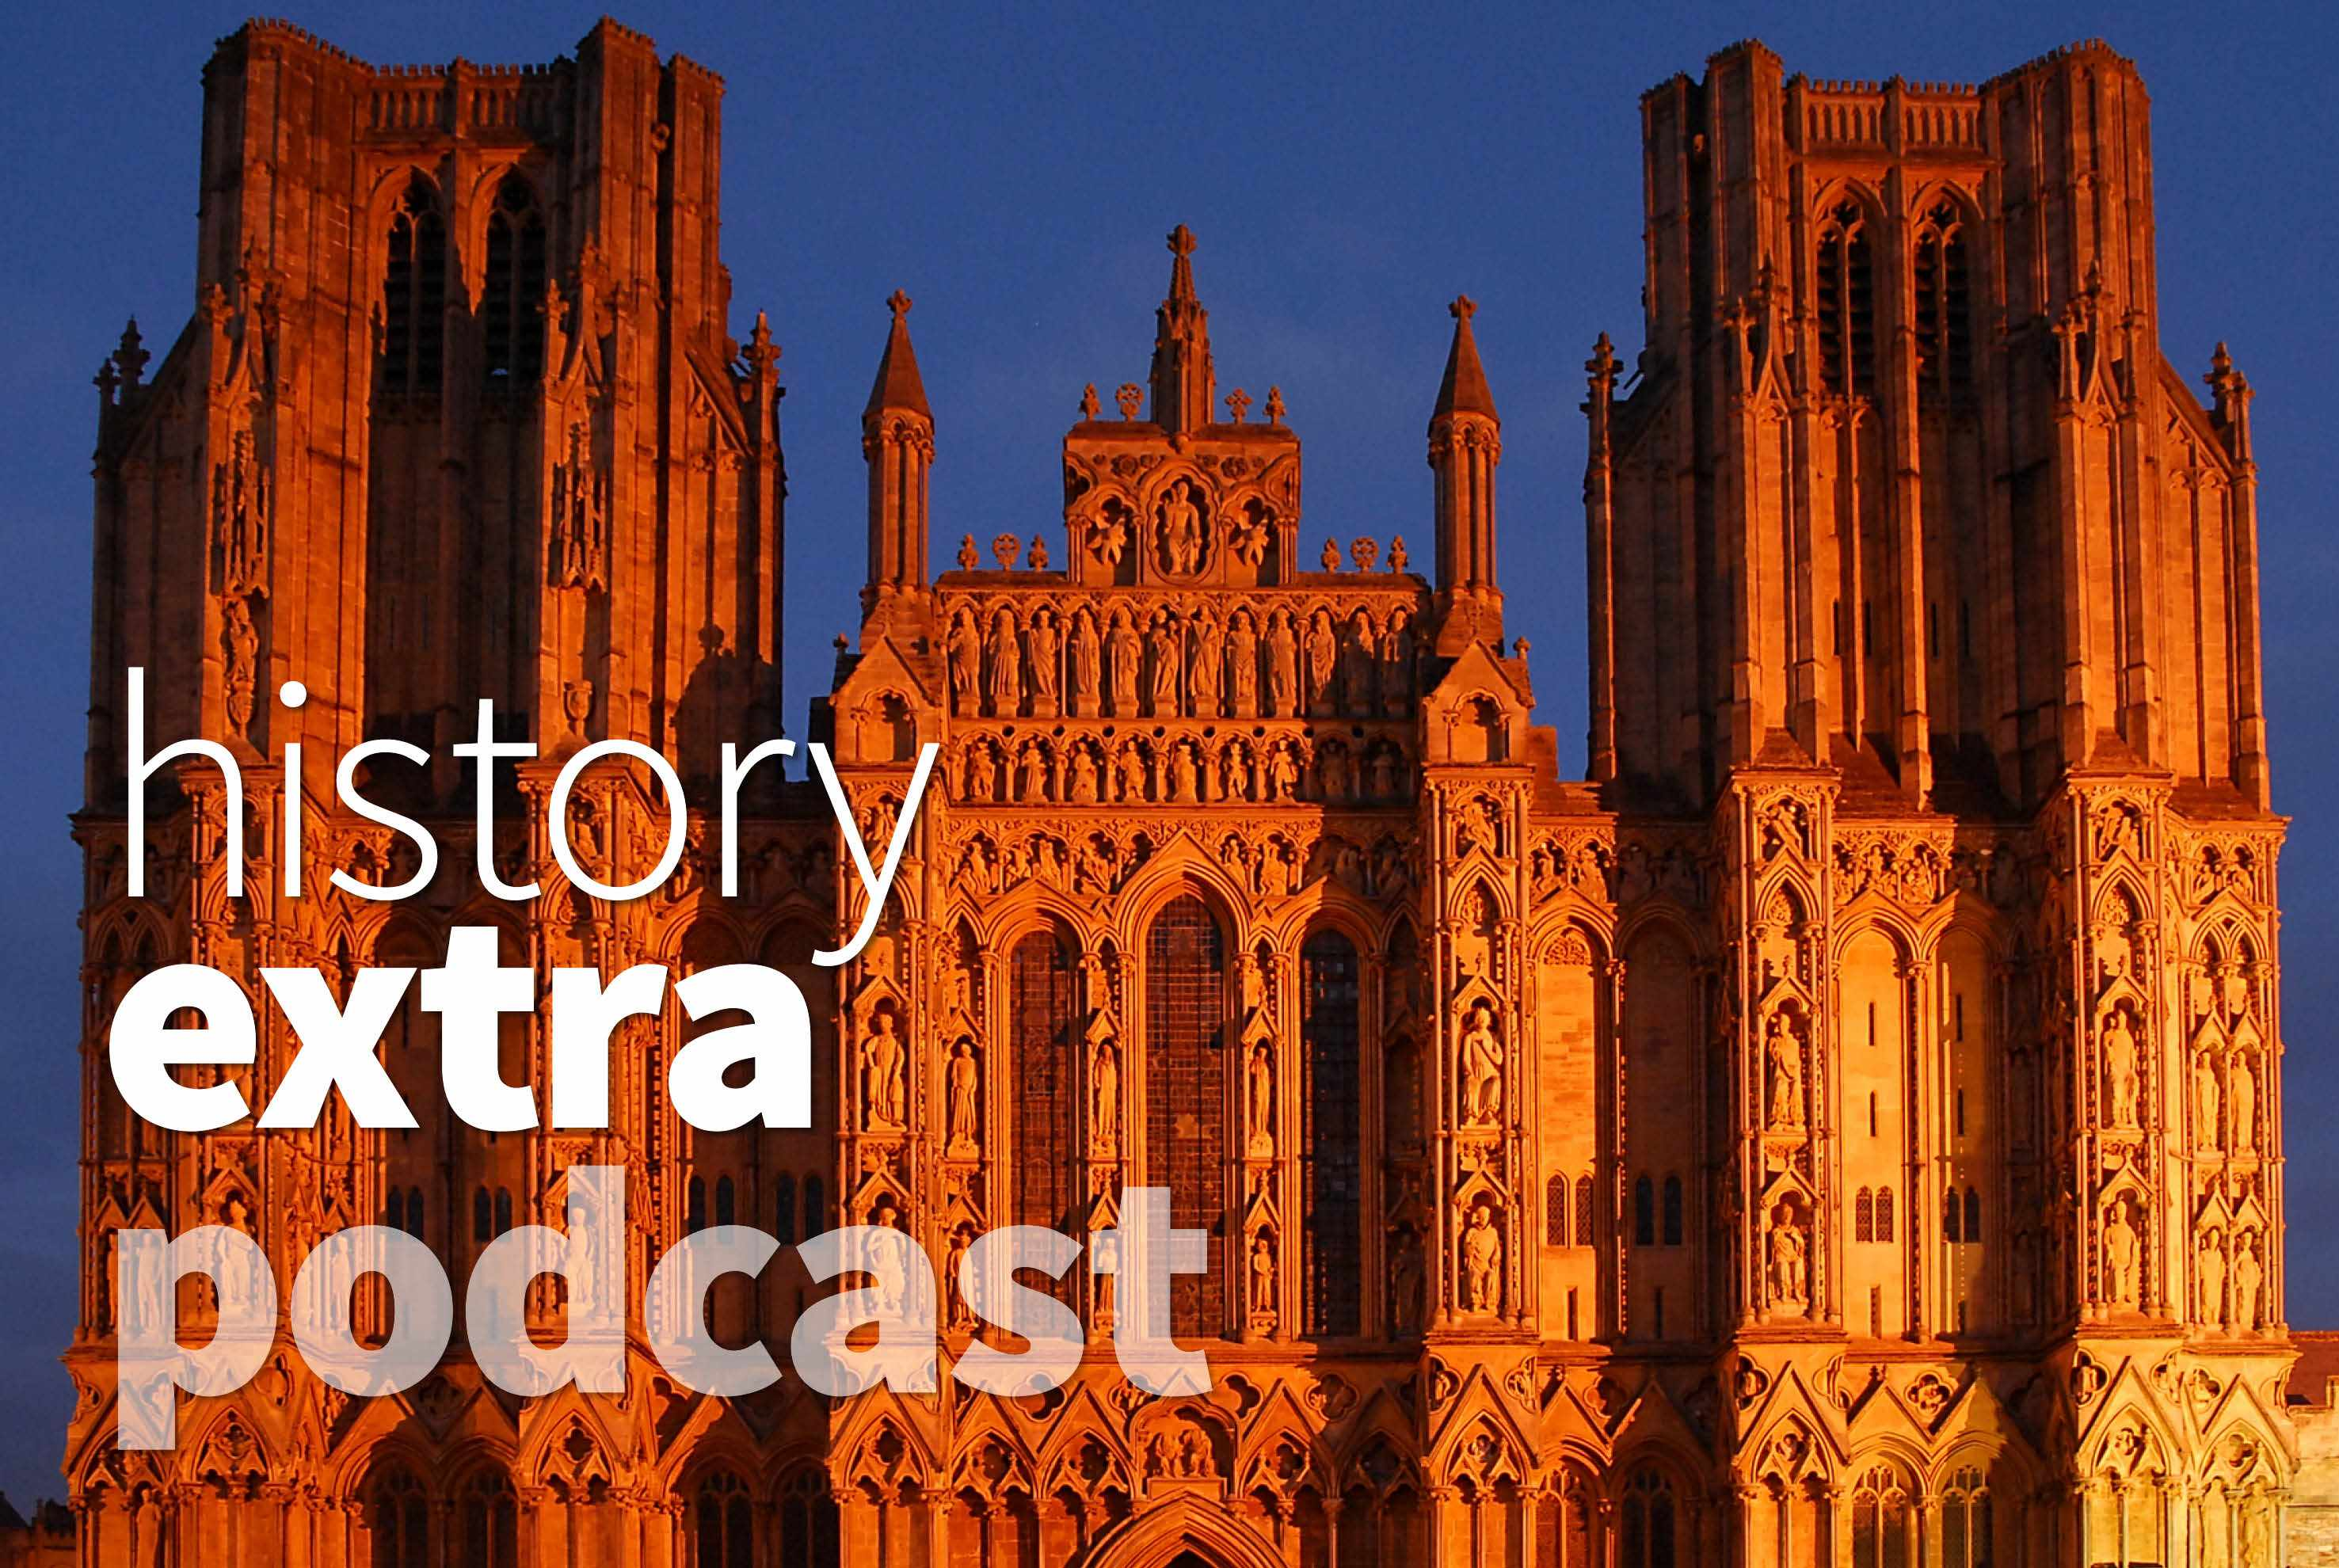 On the latest History Extra podcast, Christopher Somerville discusses his experiences of visiting some of Britain's historic cathedrals, including Wells Cathedral, pictured. (Photo by Roger Utting | Dreamstime.com)